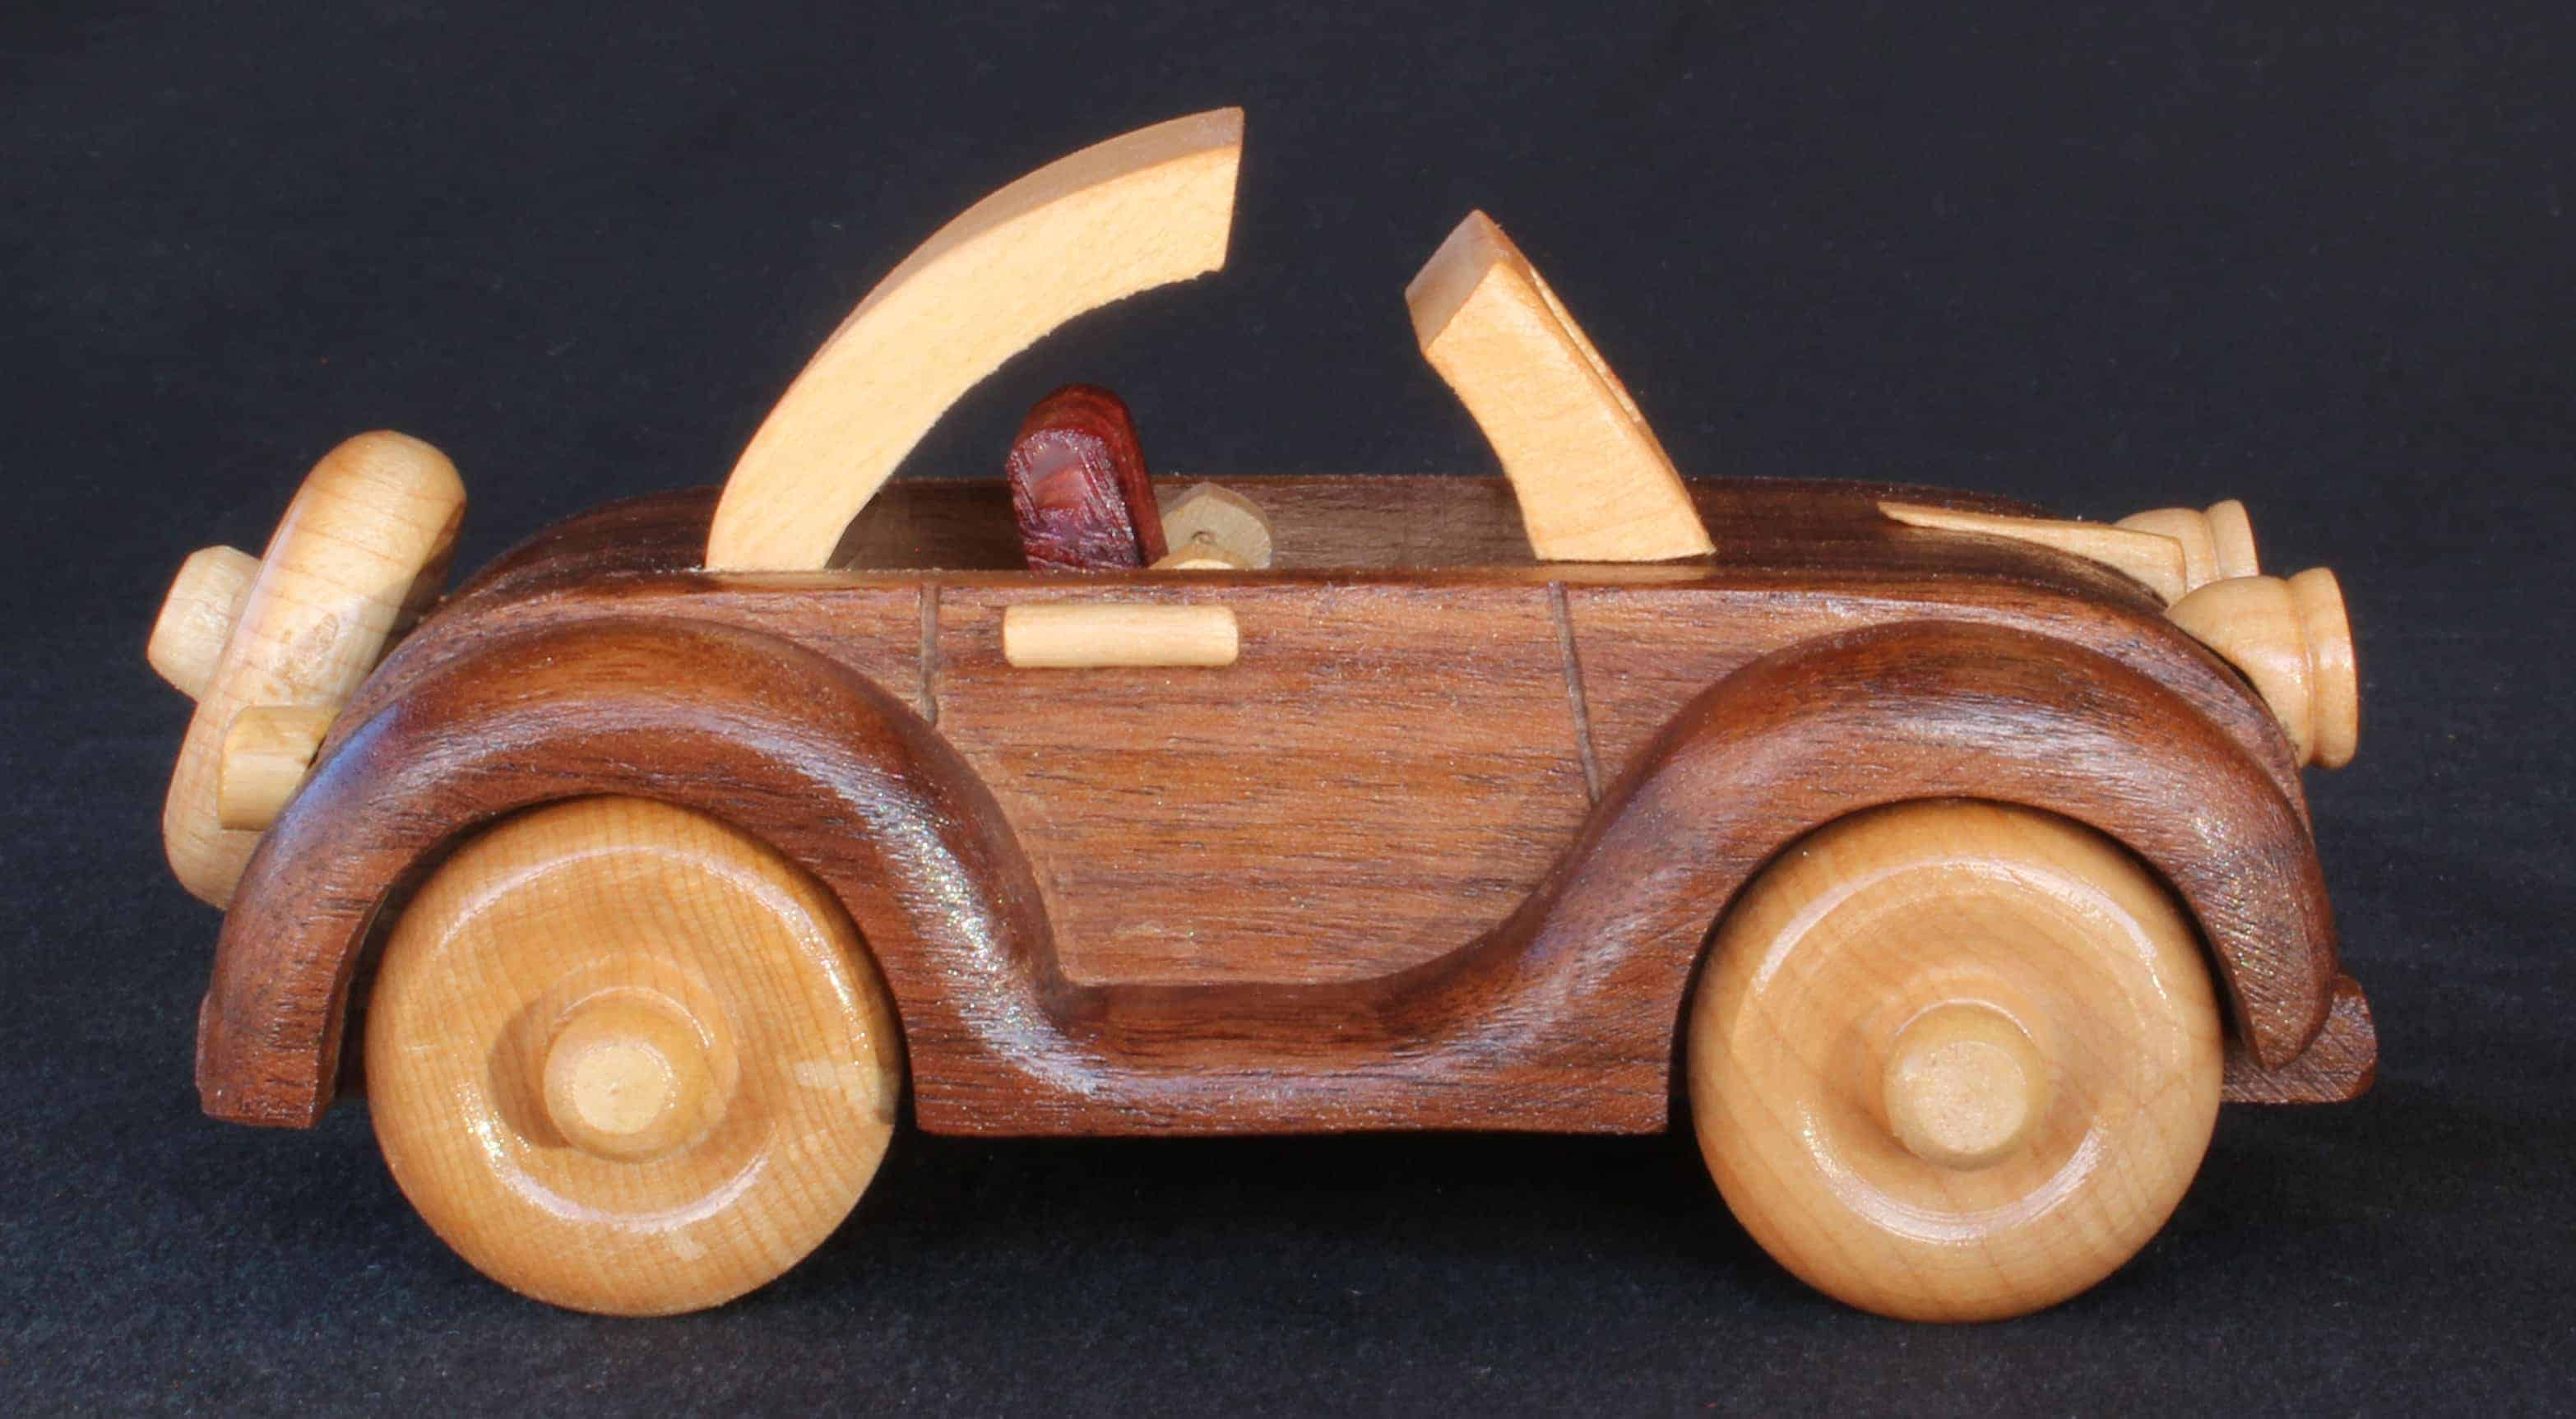 Woodworking plan to build a working wood convertible